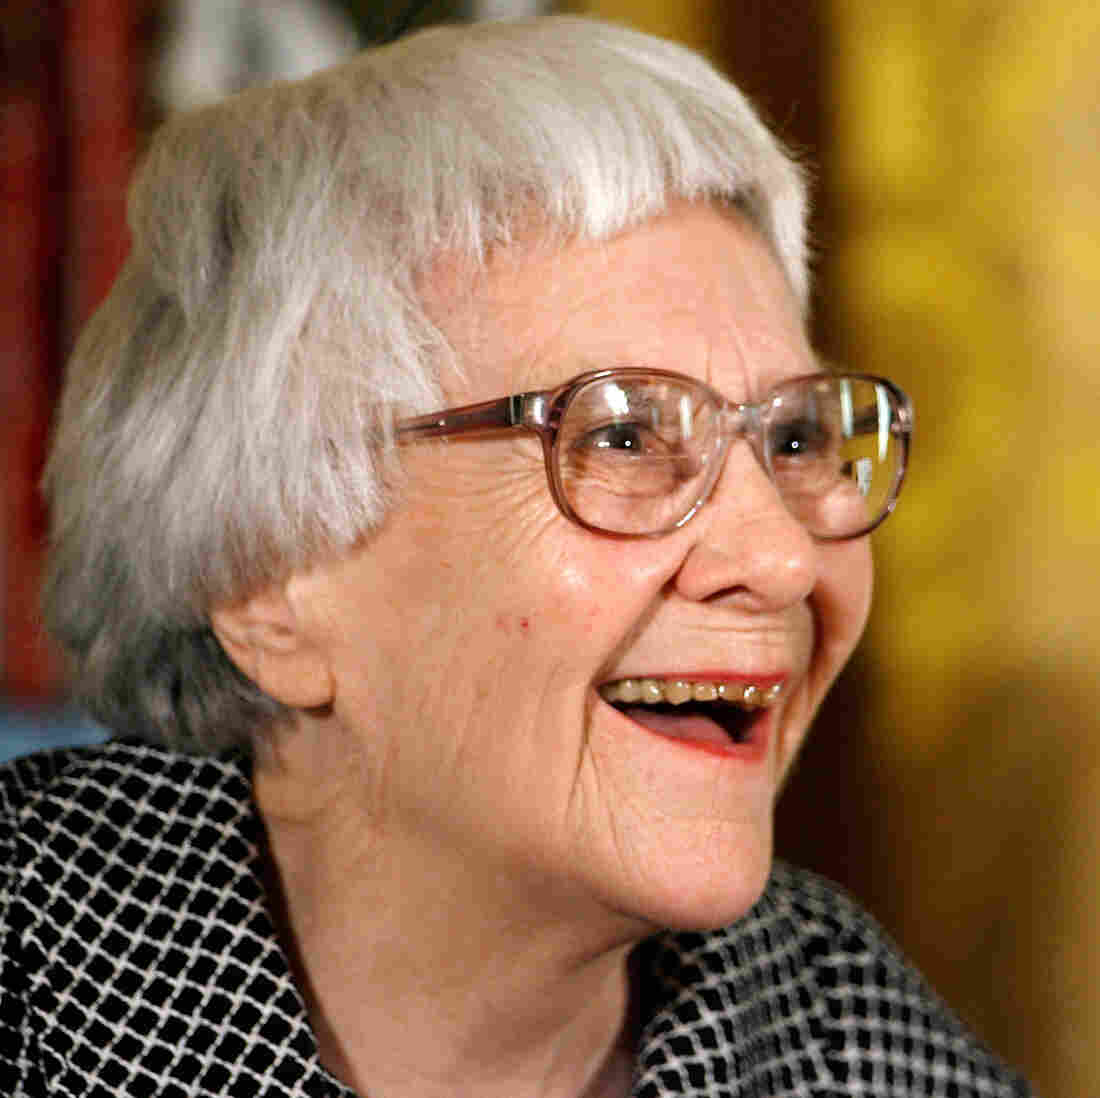 Harper Lee, seen here receiving the Presidential Medal of Freedom in 2007, actually wrote Go Set a Watchman first. But she set it aside when her editor suggested focusing on Scout's flashbacks instead — and she did, in what became To Kill a Mockingbird.